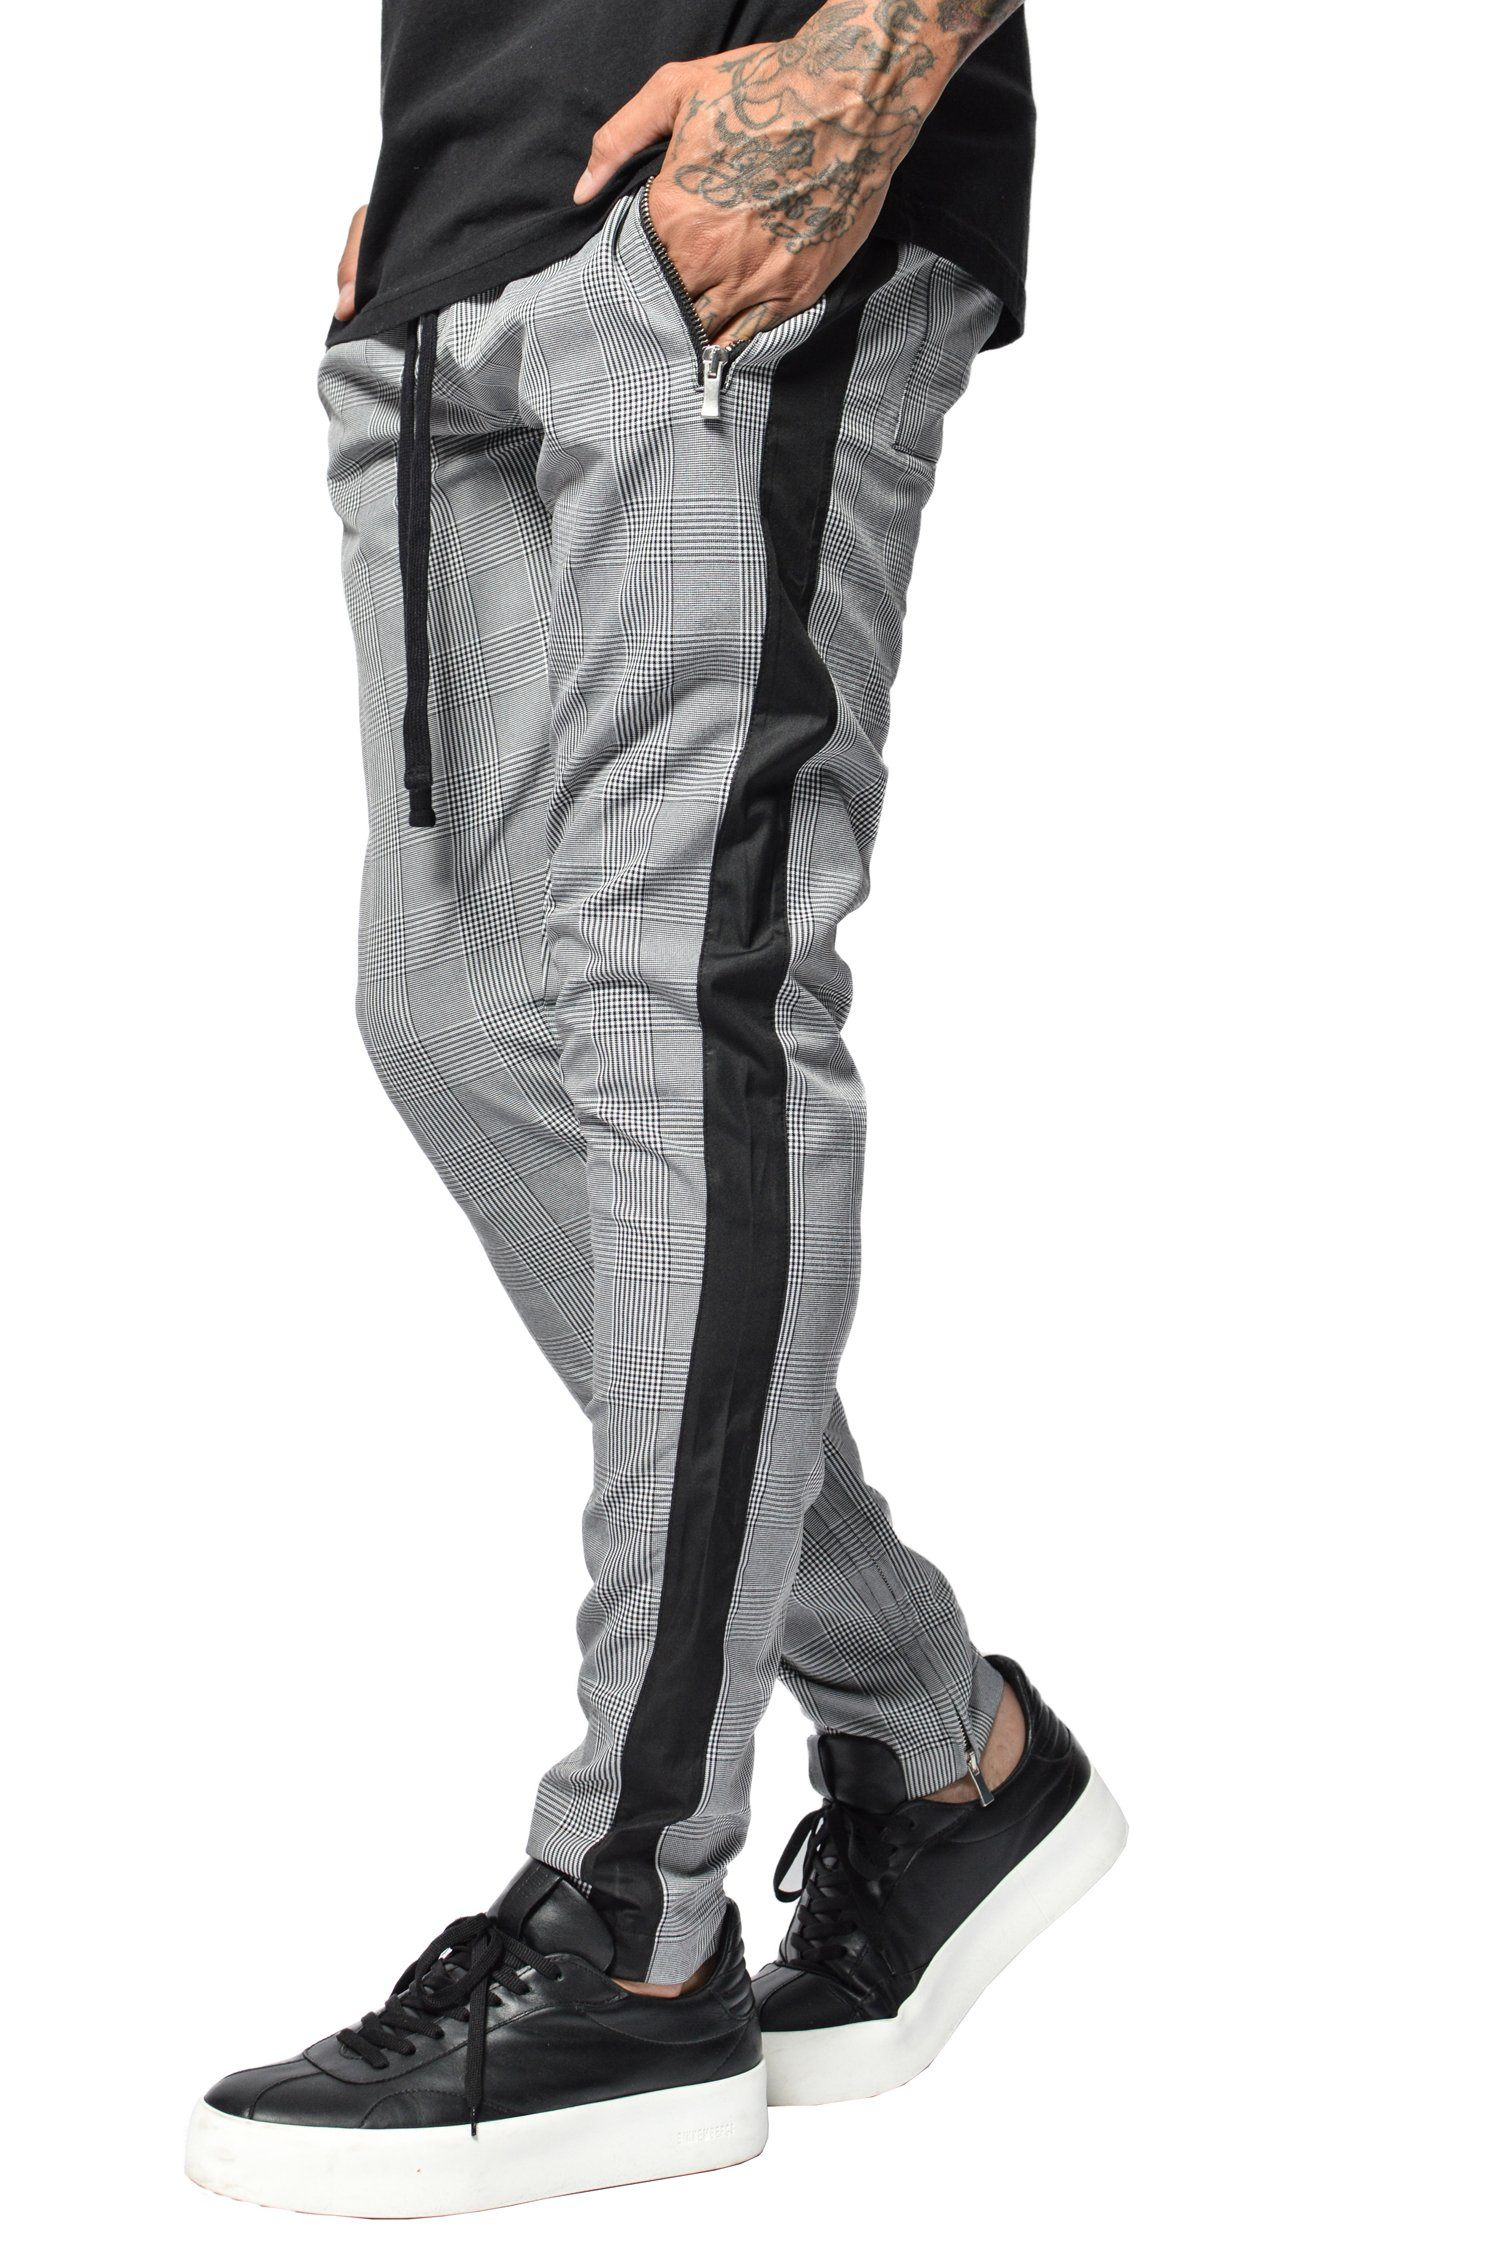 PEGADOR - Lucio Trackpants Black/Grey Checkered - PEGADOR - Dominate the Hype